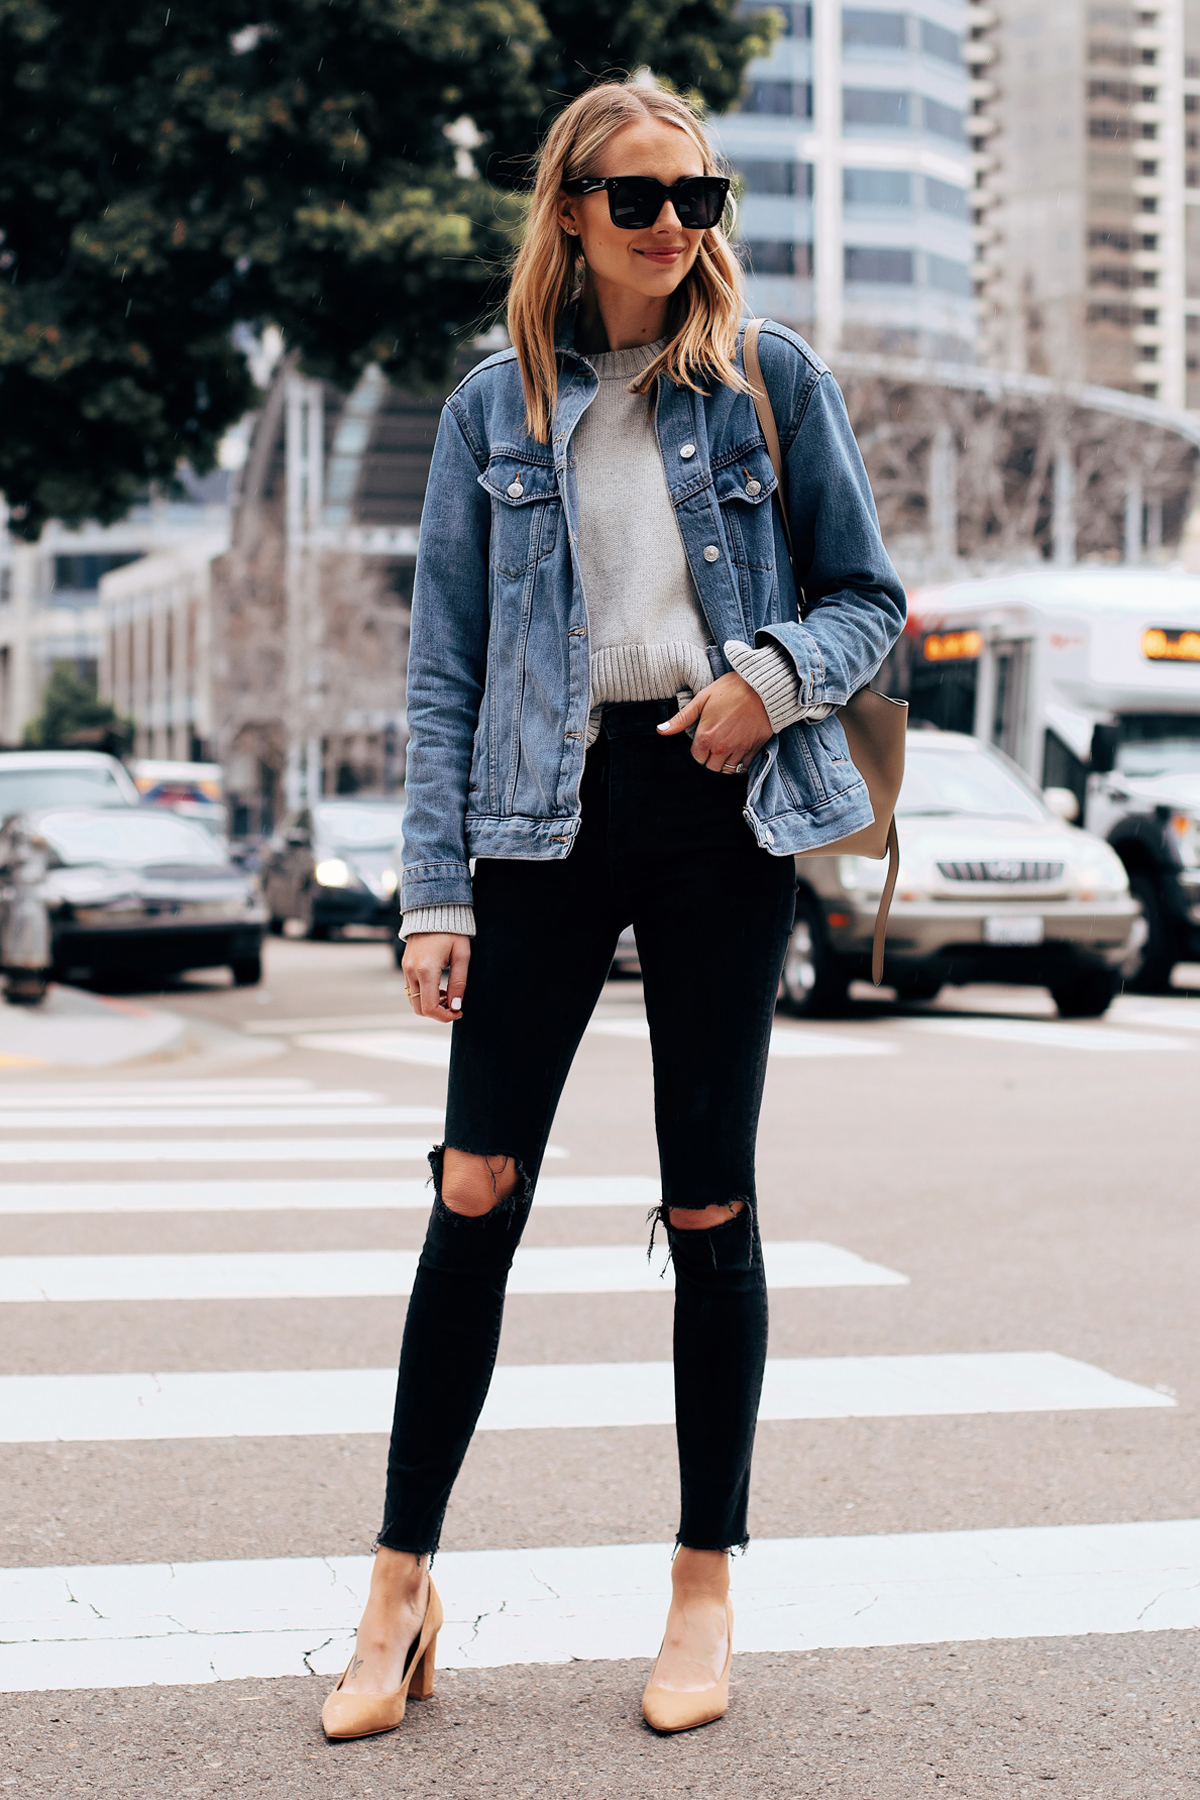 Fashion Jackson Capsule Wardrobe Wearing Topshop Oversized Denim Jacket Everlane Grey Sweater Madewell Black Ripped Skinny Jeans Tan Pumps